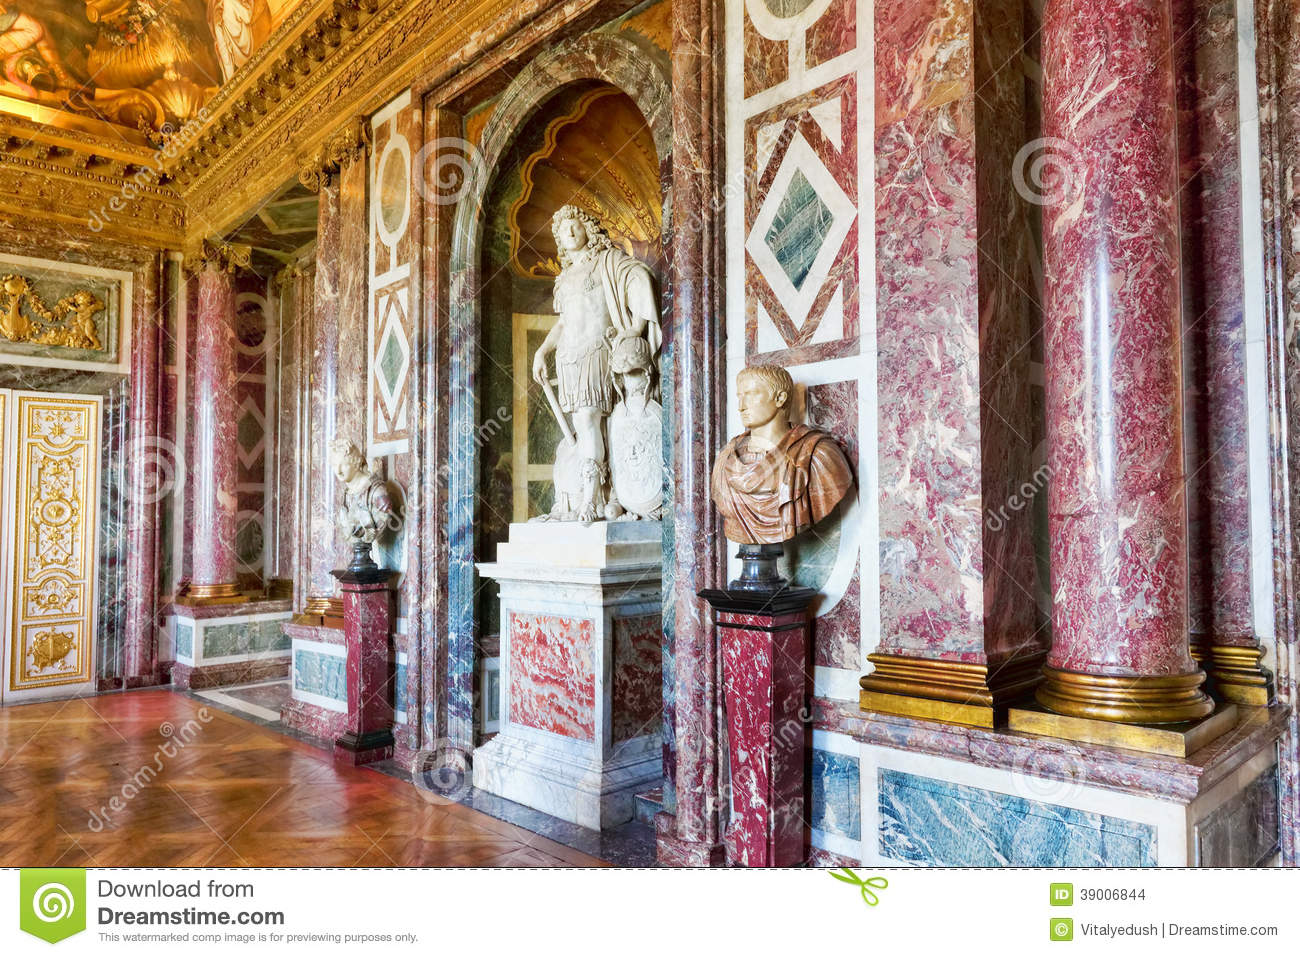 Ch teau int rieur de versailles photo stock image 39006844 for Chateau de versailles interieur